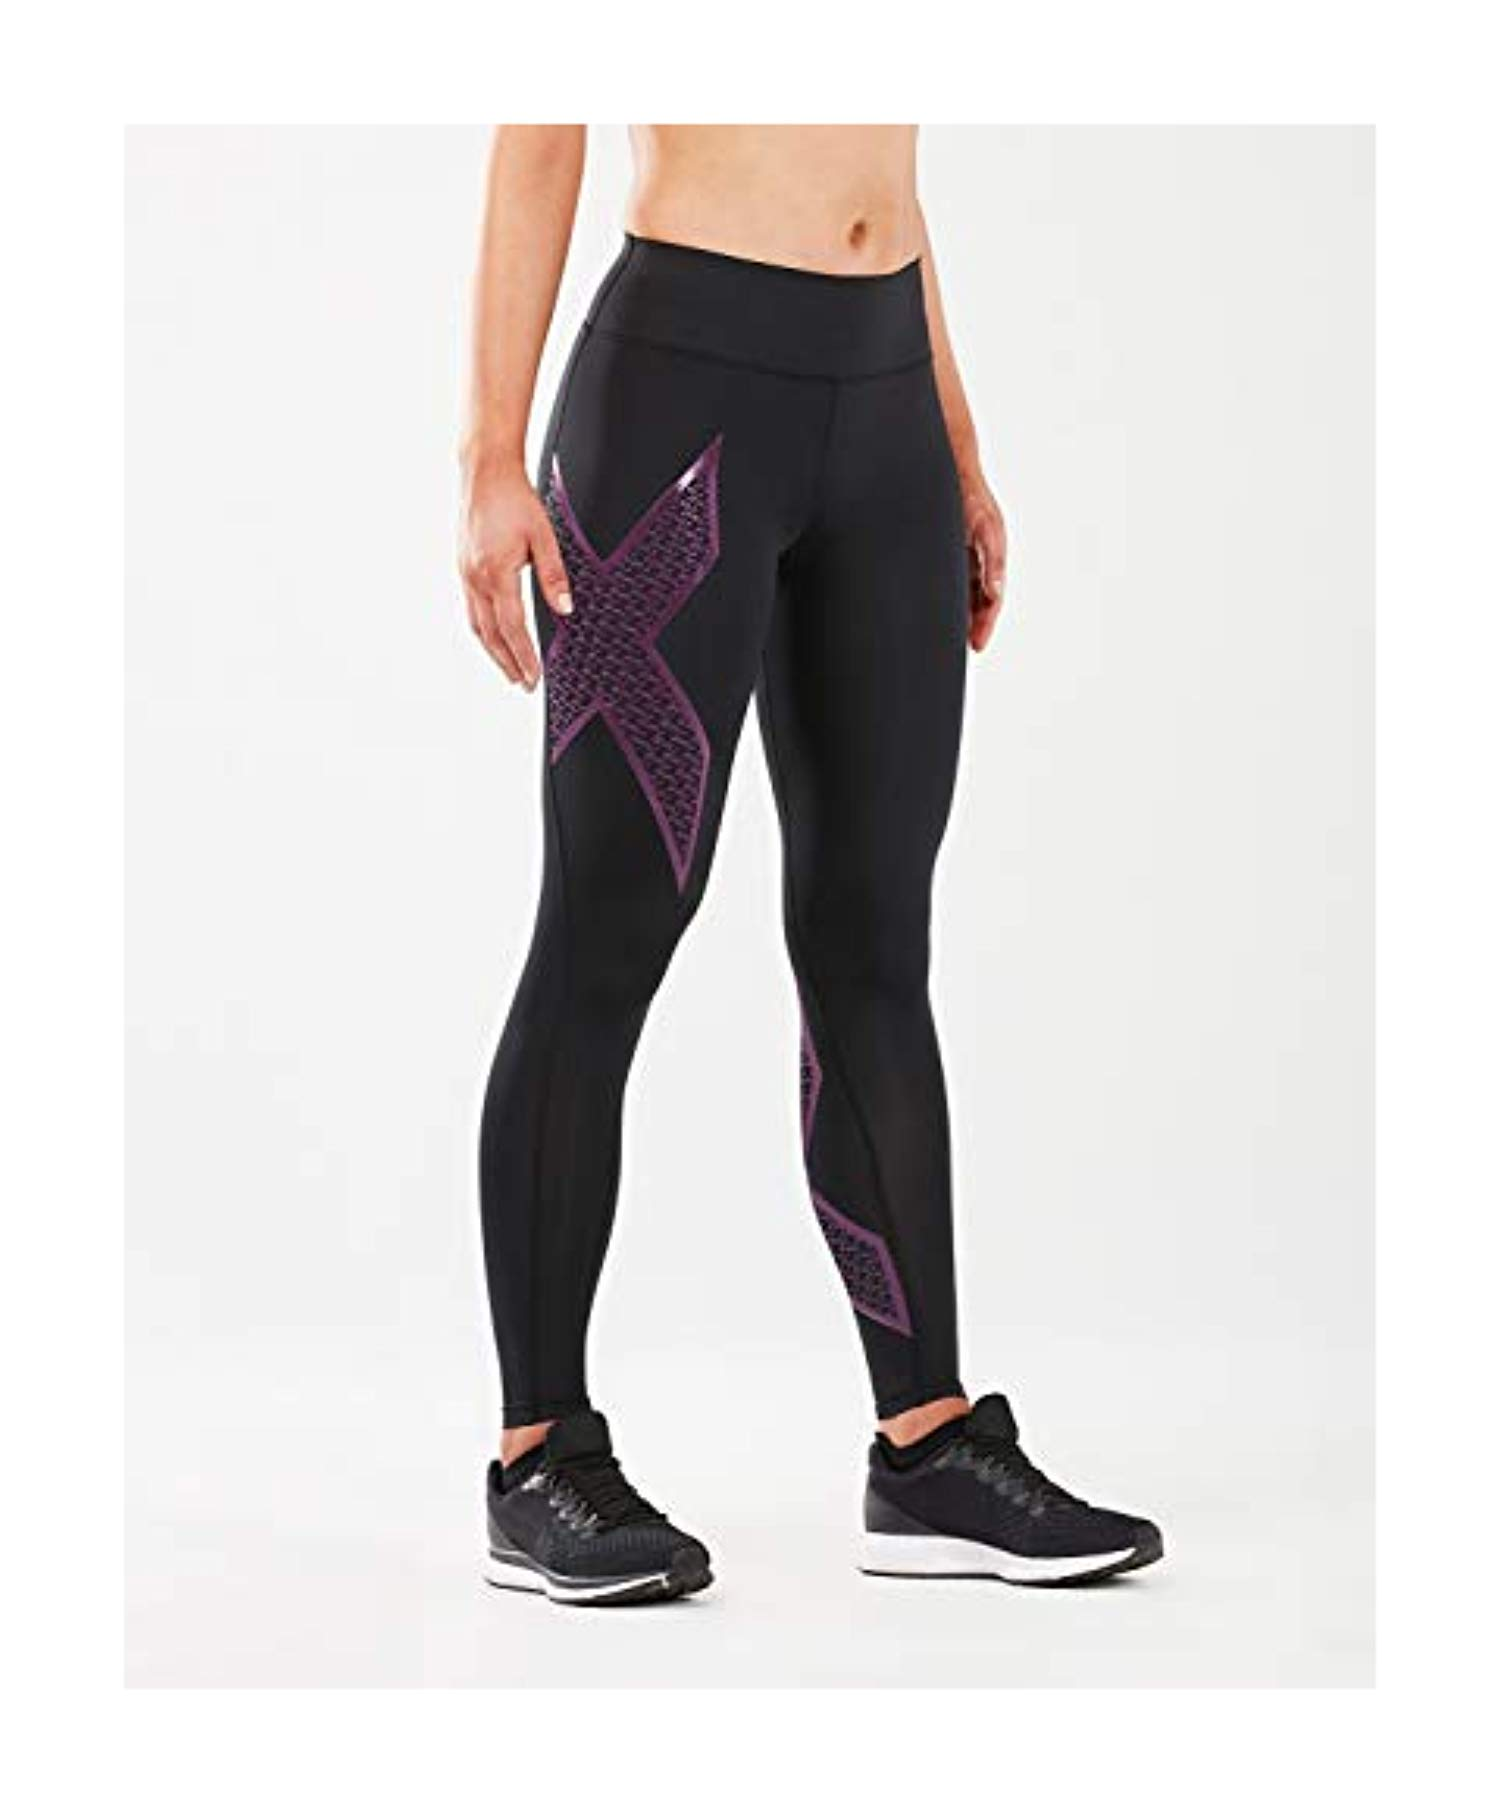 2XU Women's Bonded Mid-Rise Tights Black / 2XU Fill Grape Juice MT by 2XU (Image #1)